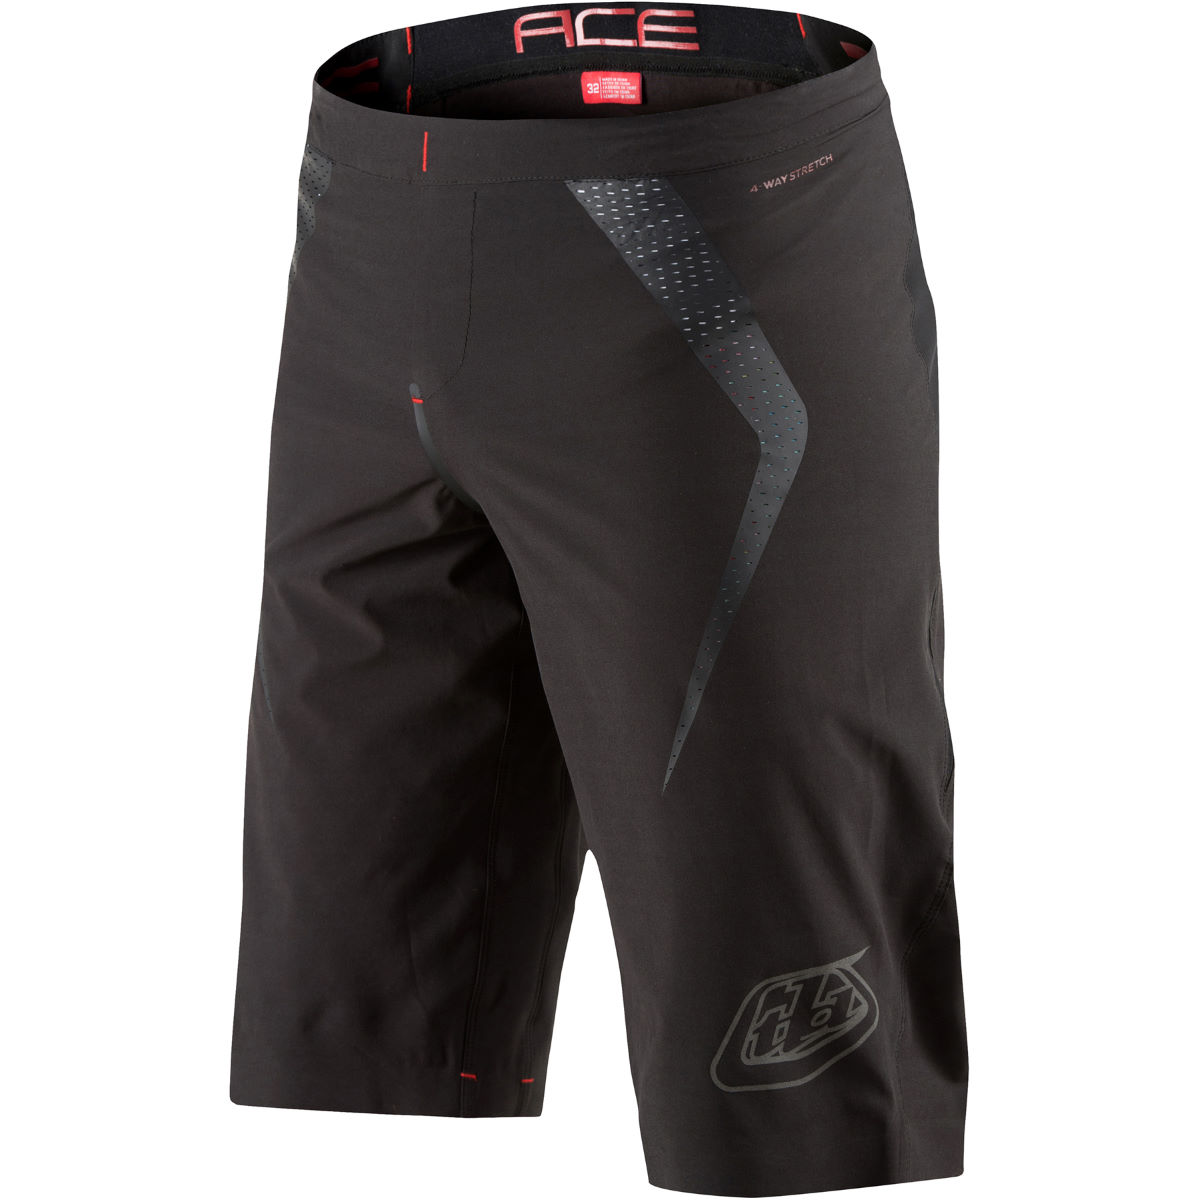 Bermudas Troy Lee Designs Ace 2.0 - Bermudas